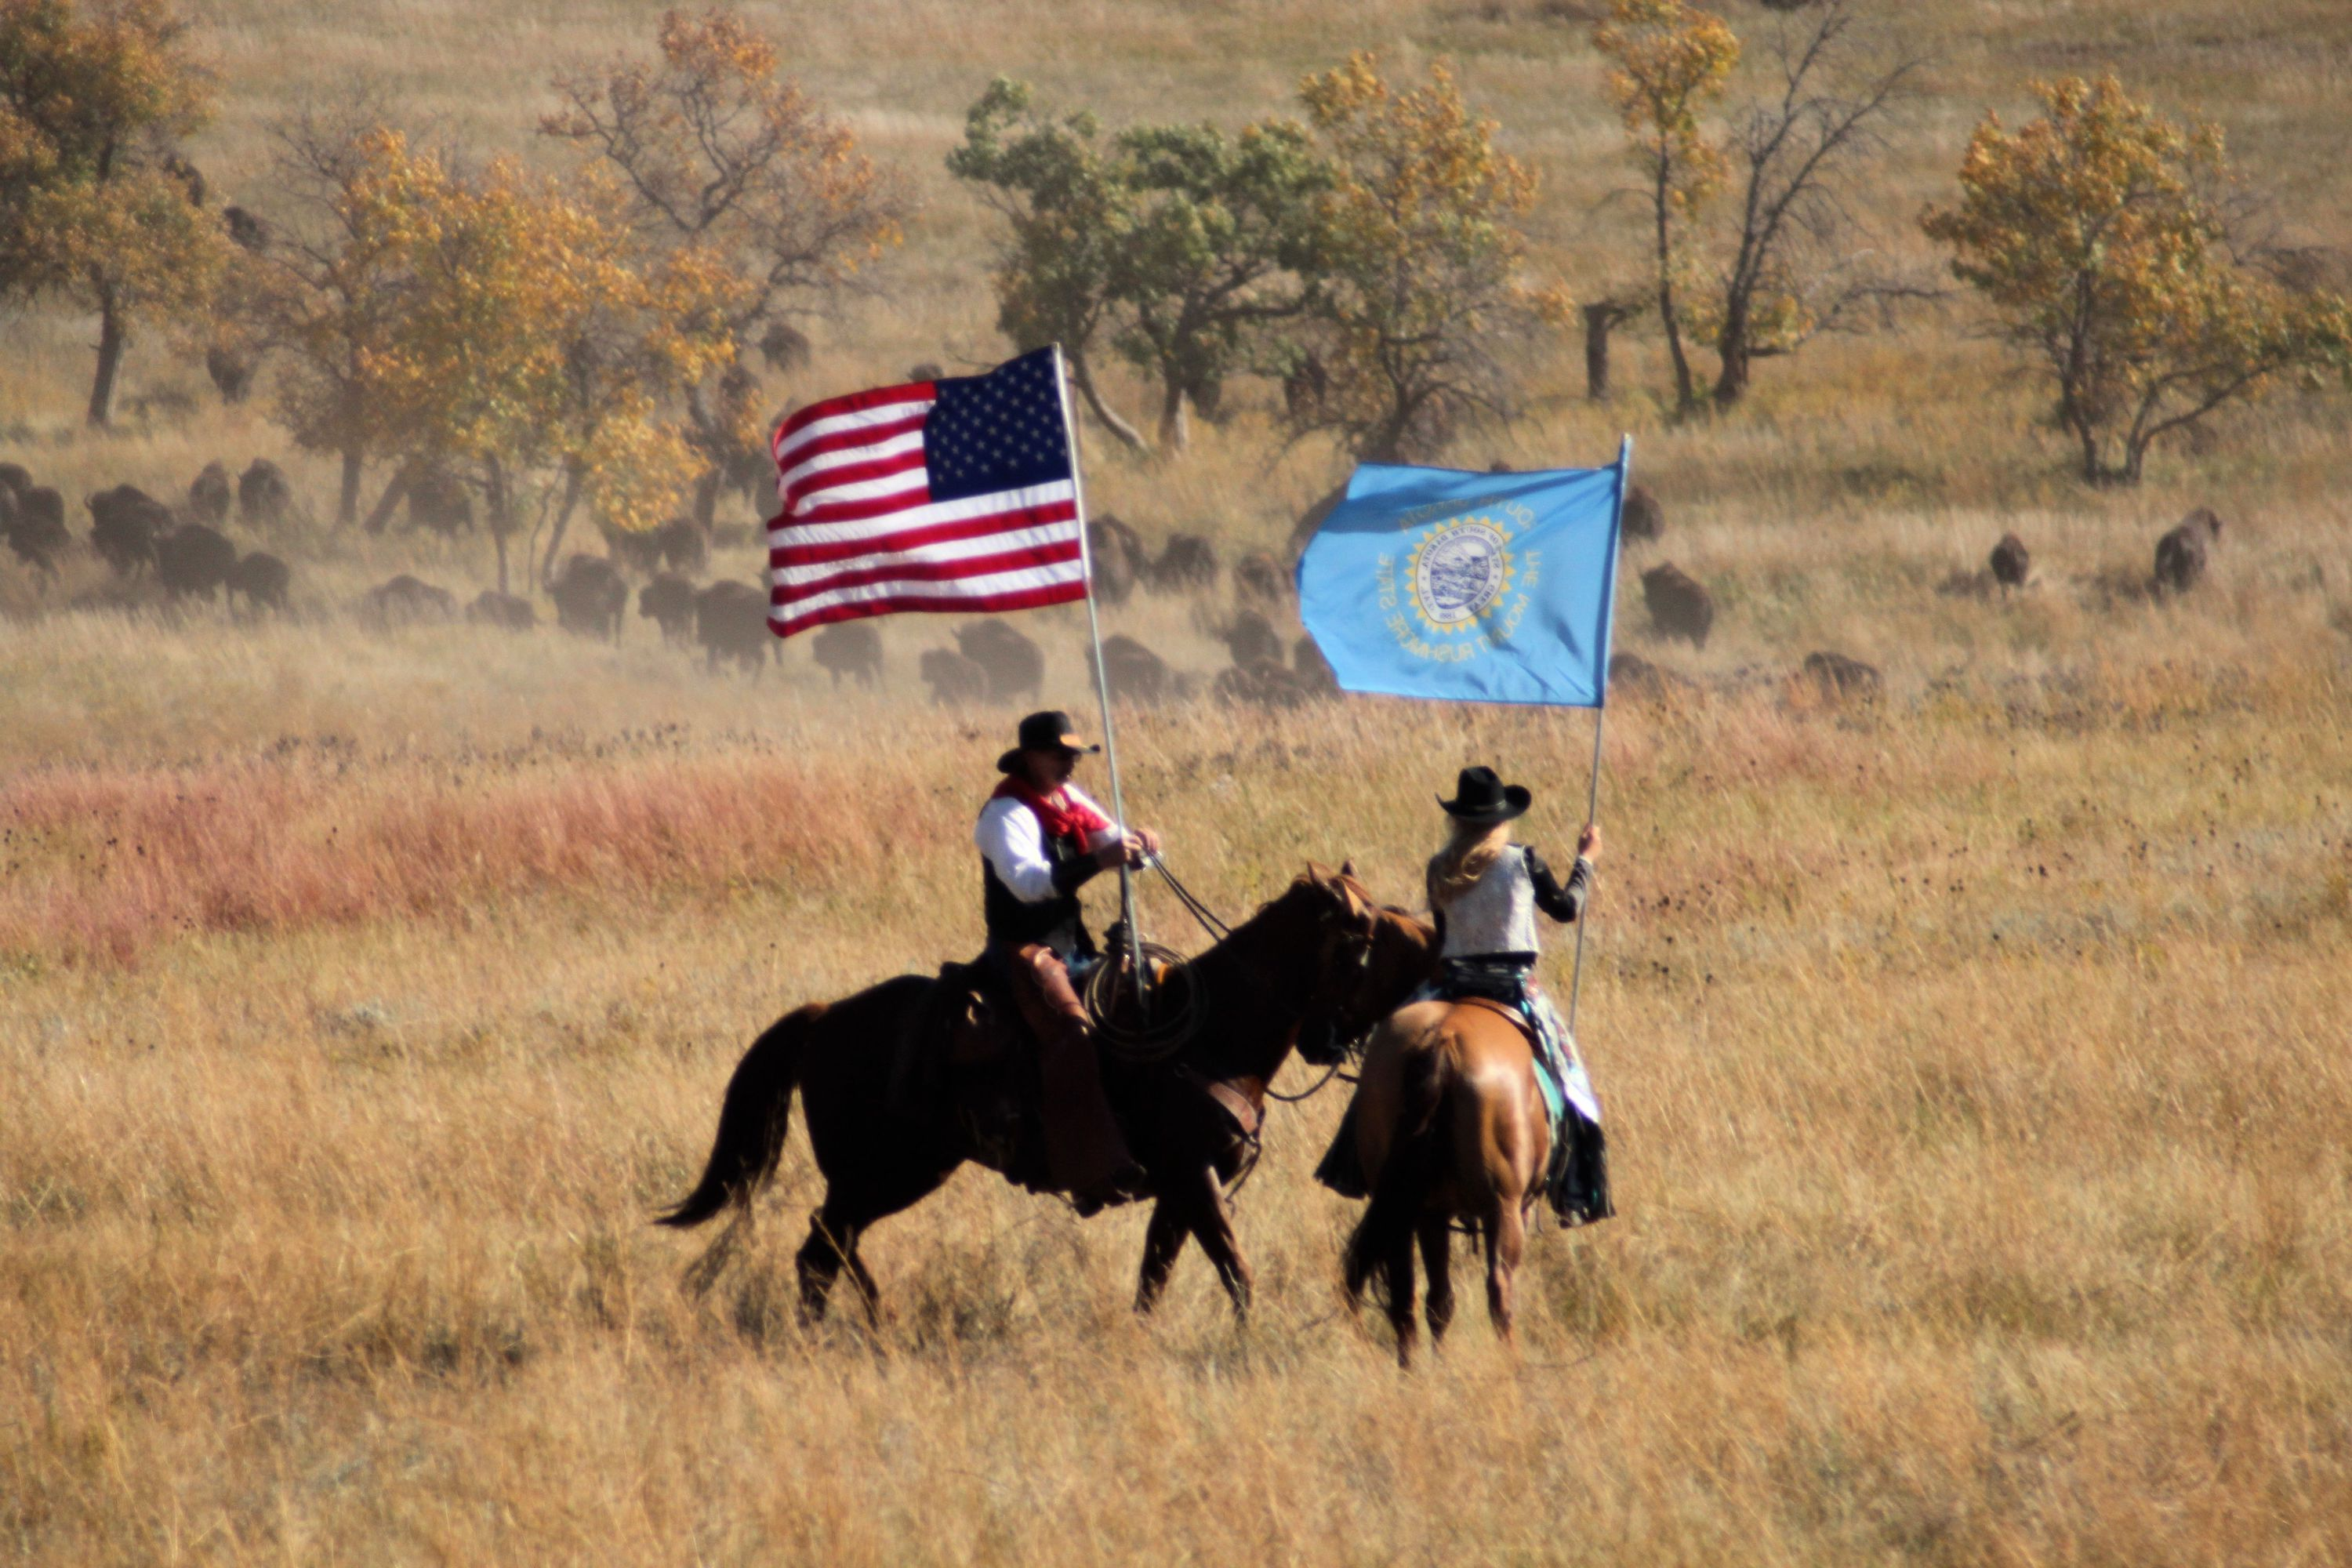 Tim Giago: South Dakota still doesn't get it when it comes to tribes and bison